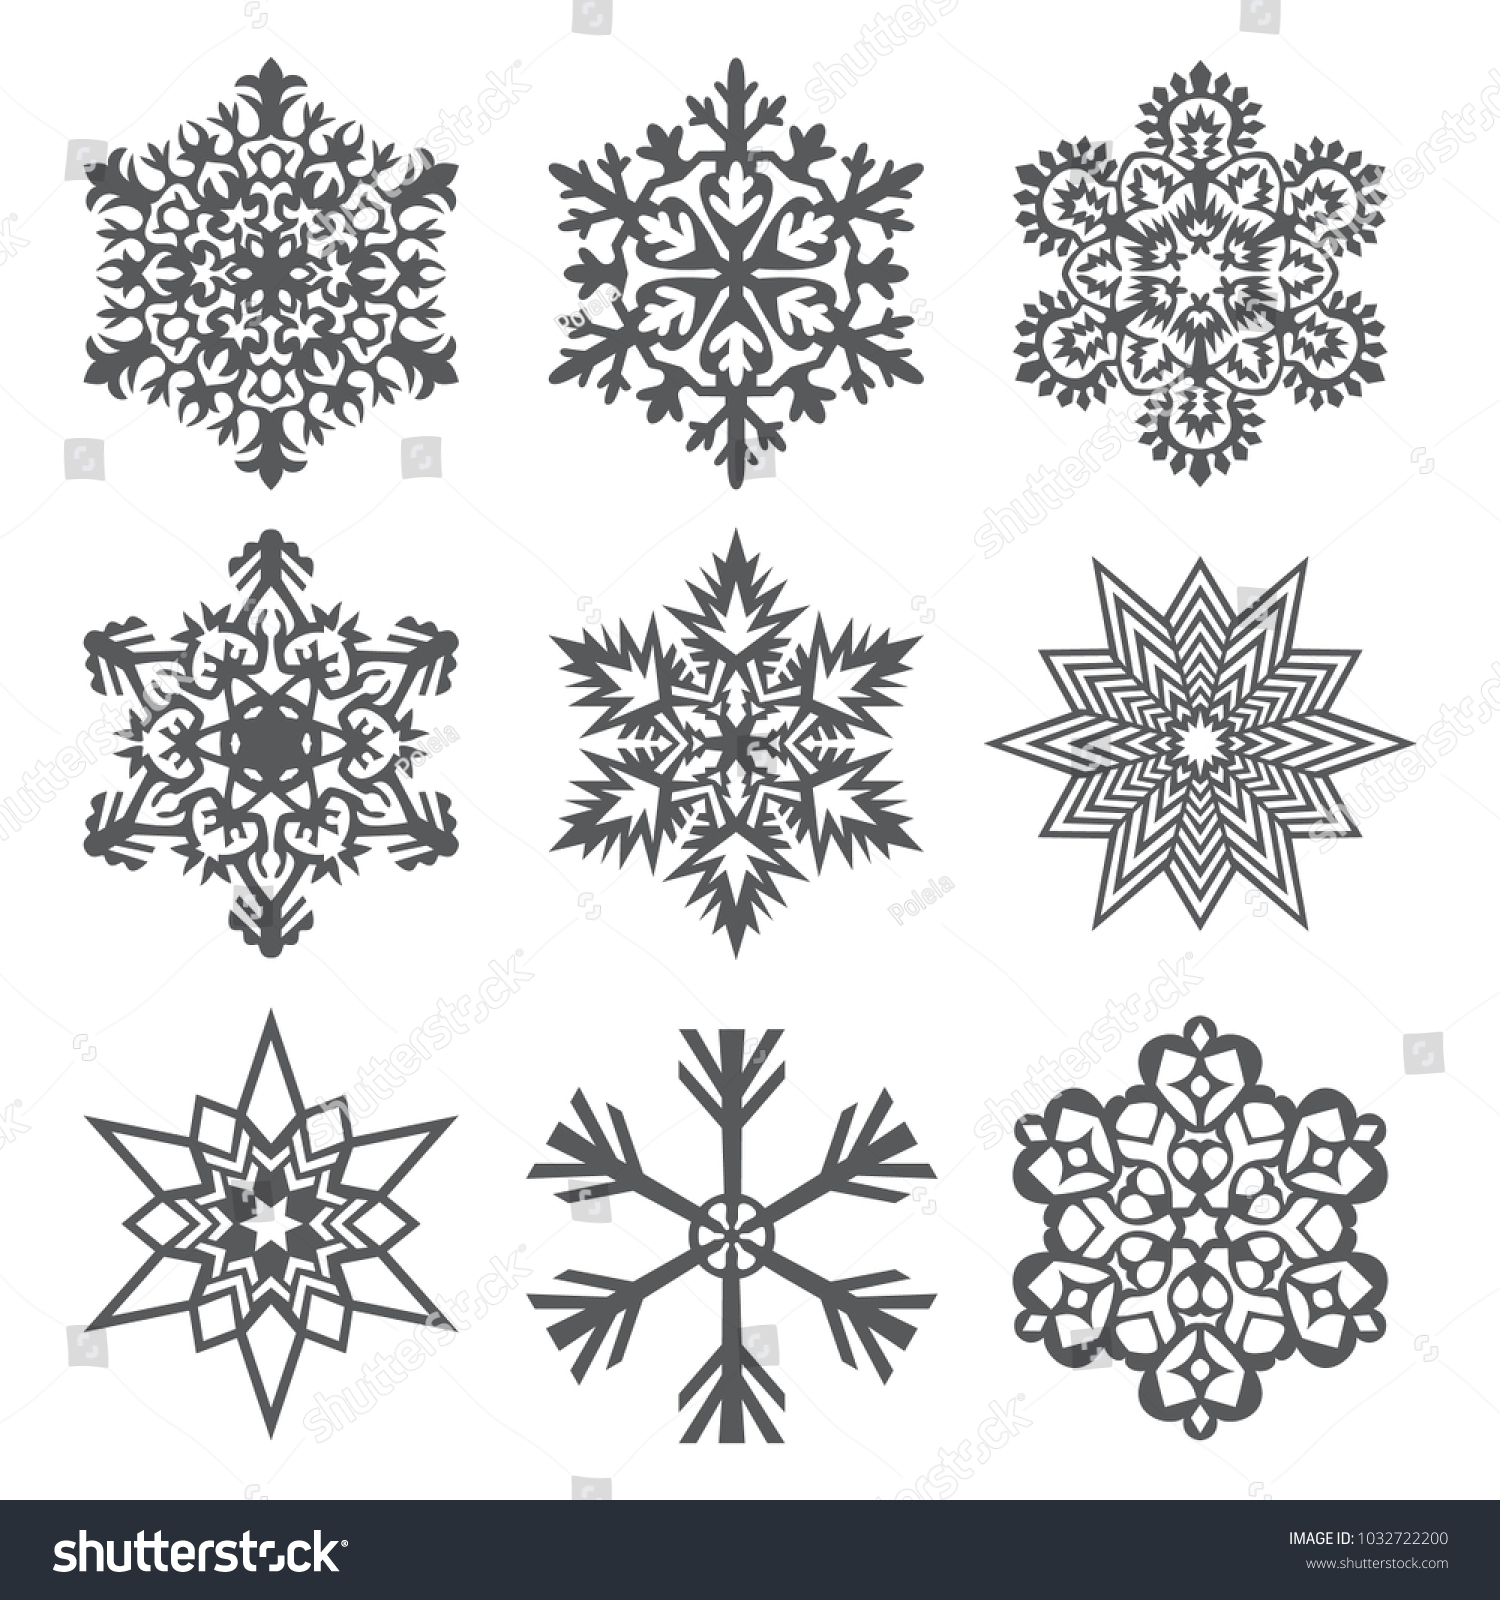 Snowflakes Template | Set Laser Cutting Openwork Snowflakes Template Stock Vector Royalty